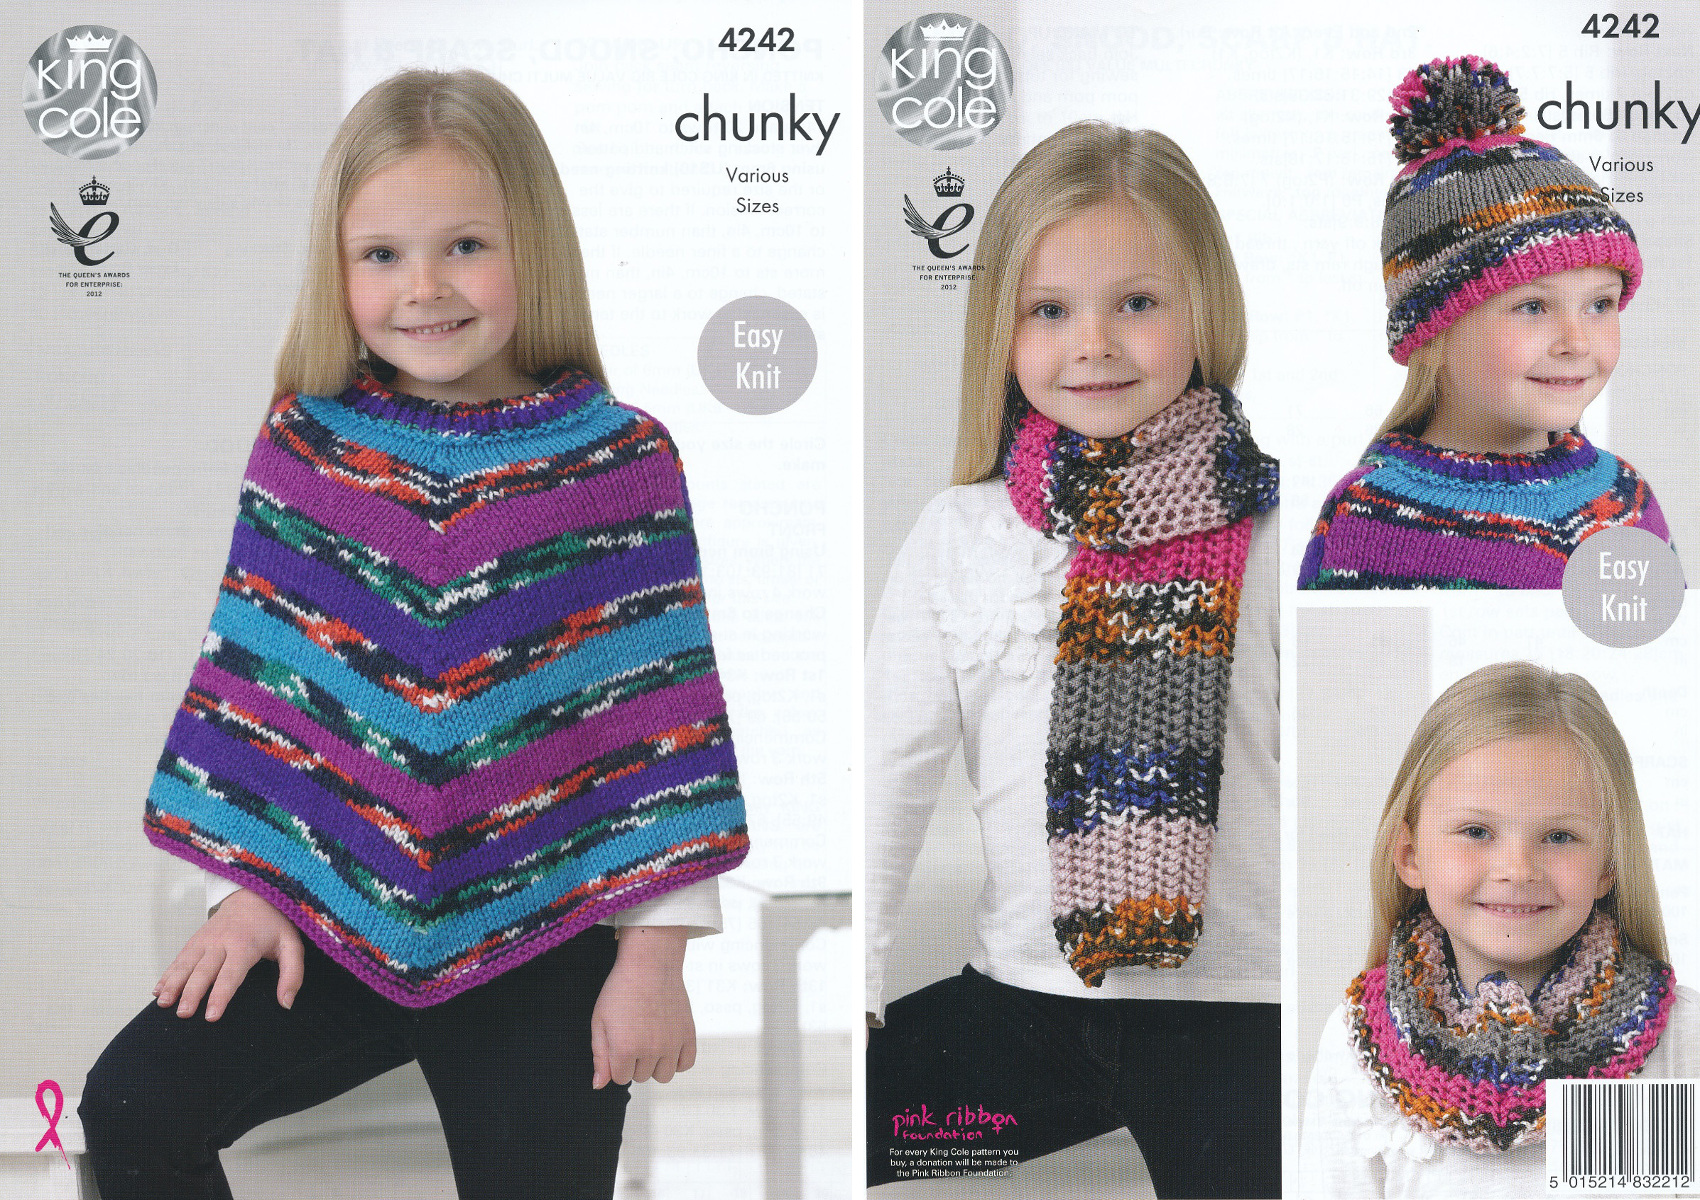 King Cole Poncho Knitting Pattern : King Cole Girls Chunky Knitting Pattern Easy Knit Poncho Snood Scarf & Ha...